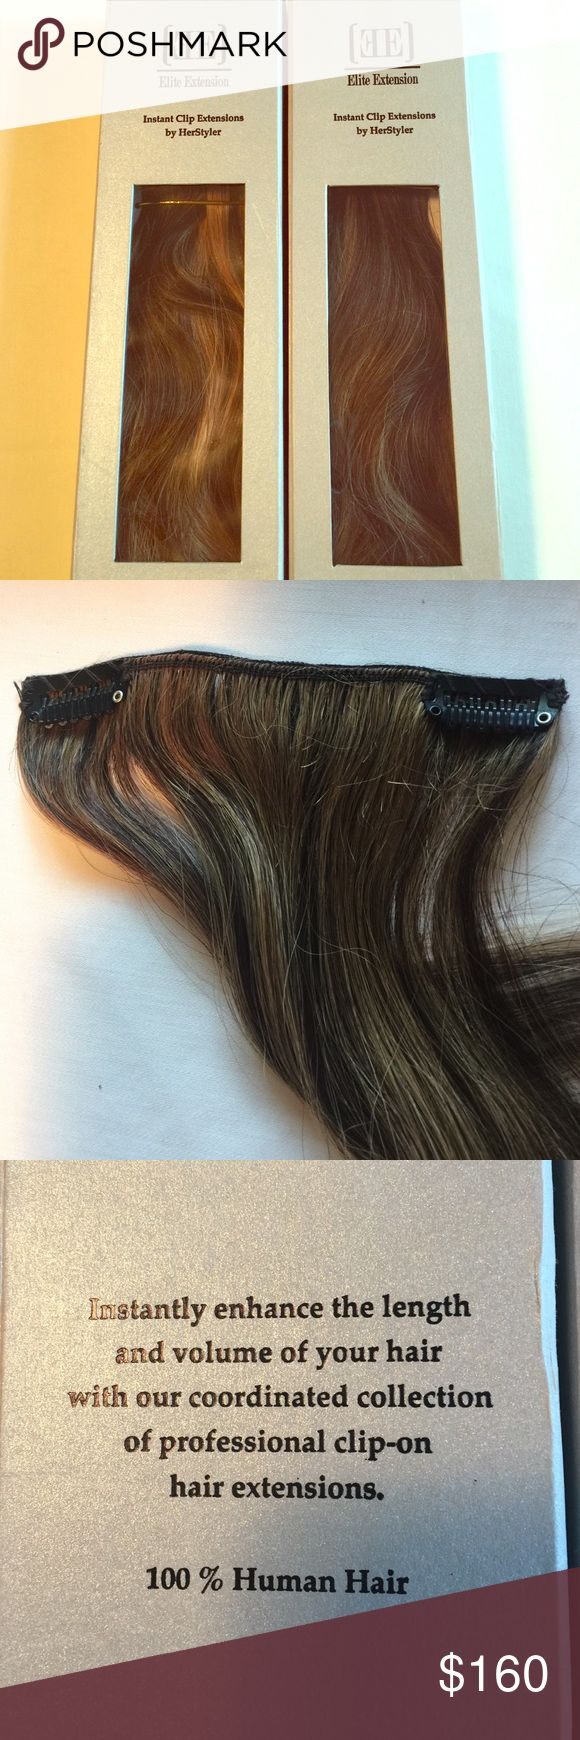 26 best extension images on pinterest hair extensions packaging elite hair extensions by herstyler 100 human hair 2 boxes instant clip extensions in pmusecretfo Choice Image